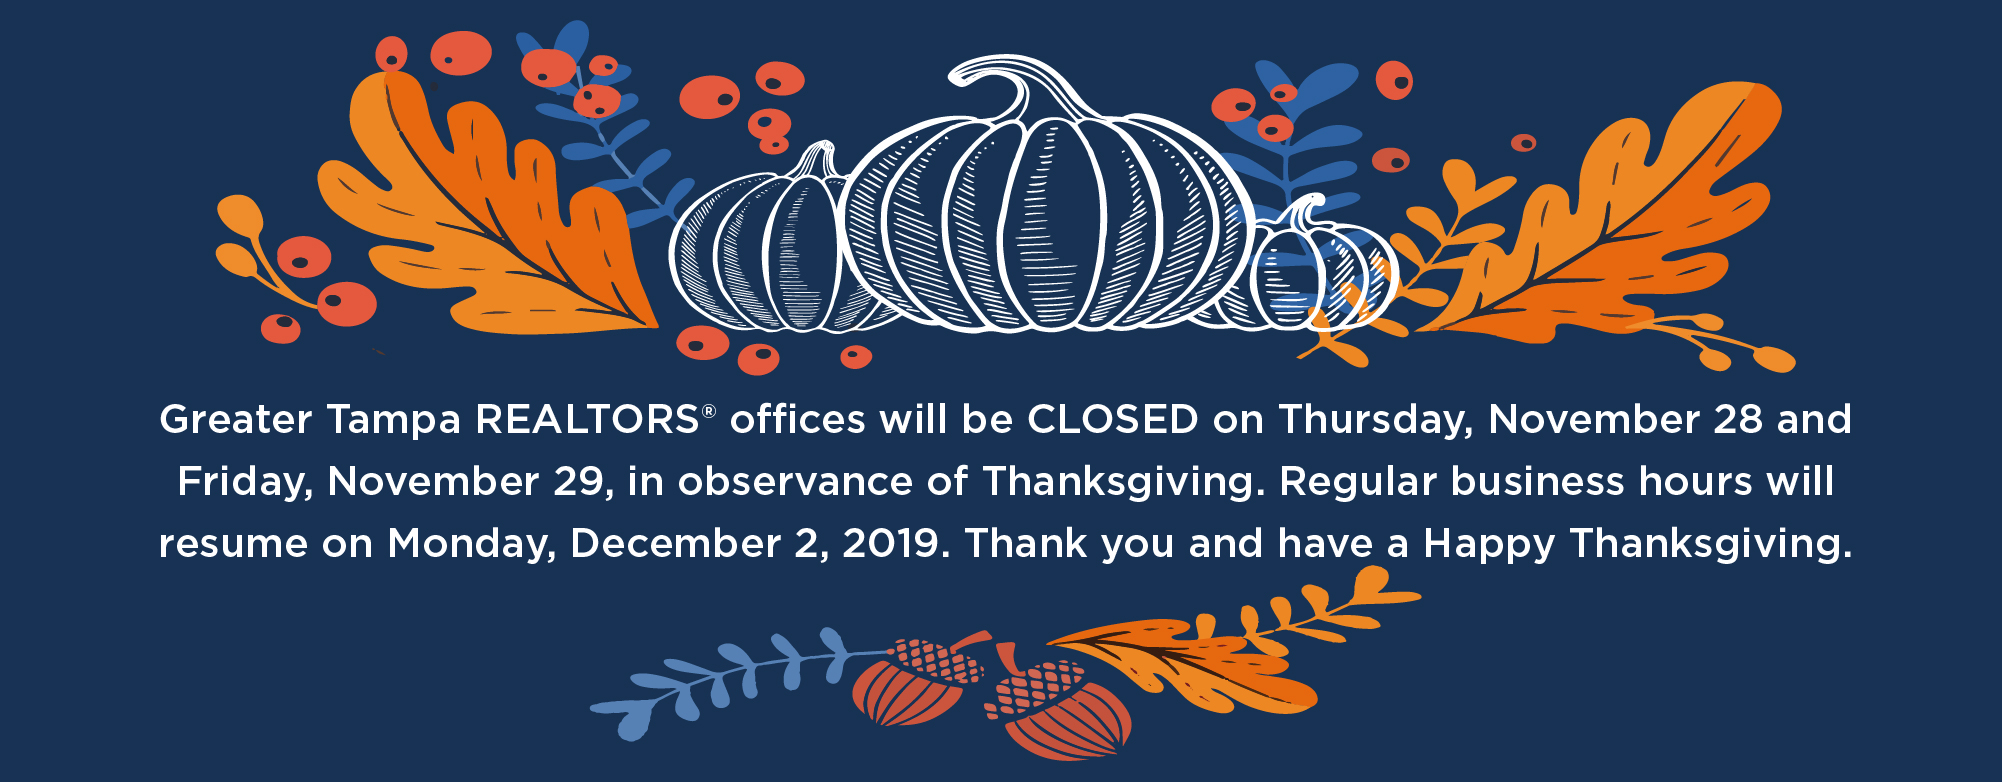 Greater Tampa REALTORS® offices will be closed on Thursday, November 28 and Friday, November 29, in observance of Thanksgiving. Regular business hours will resume on Monday, December 1, 2019. Thank you and have a Happy Thanksgiving.